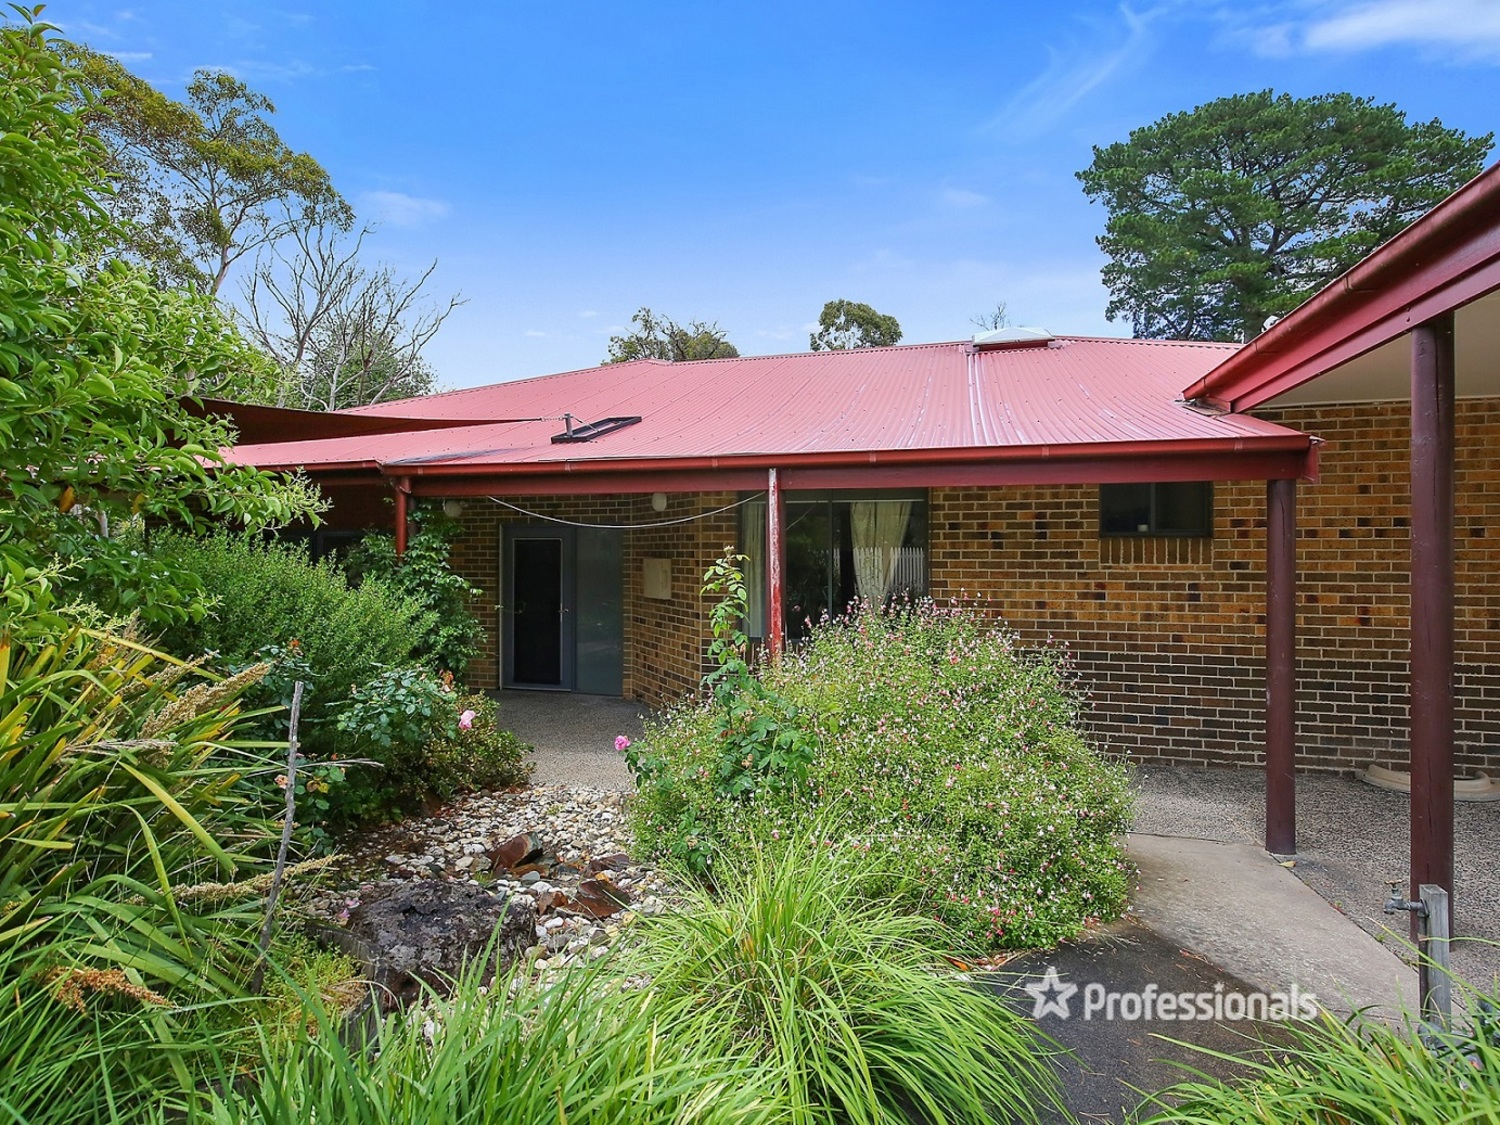 Property Report for 7 Lara Court, Mount Evelyn VIC 3796